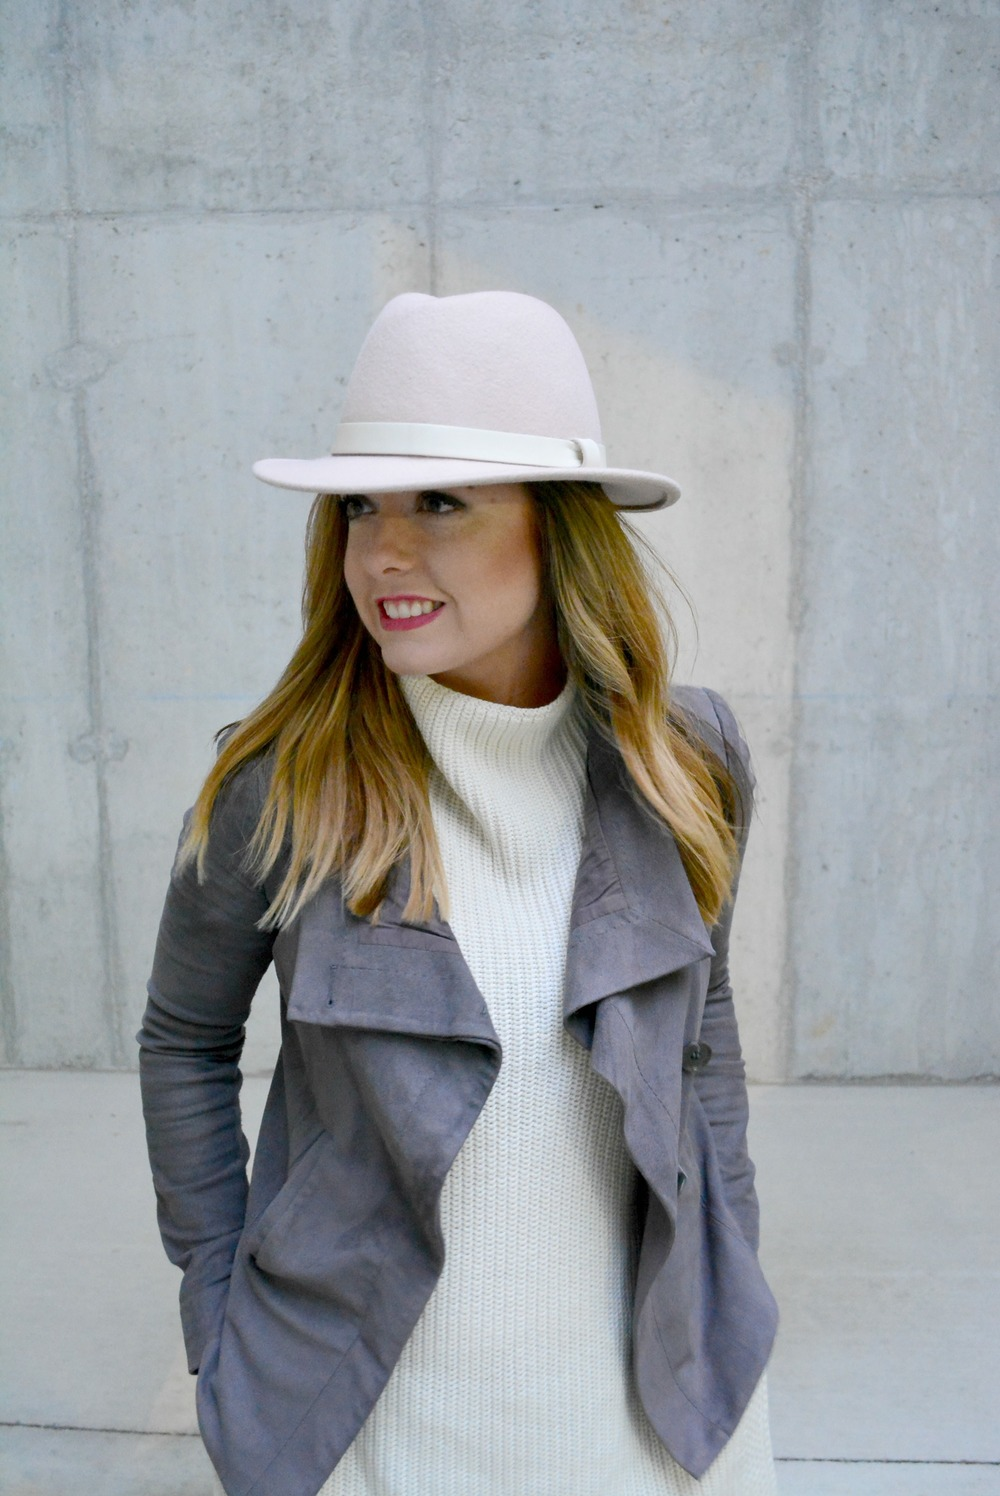 Soft pink hat with cream sweater with gray suede jacket for winter